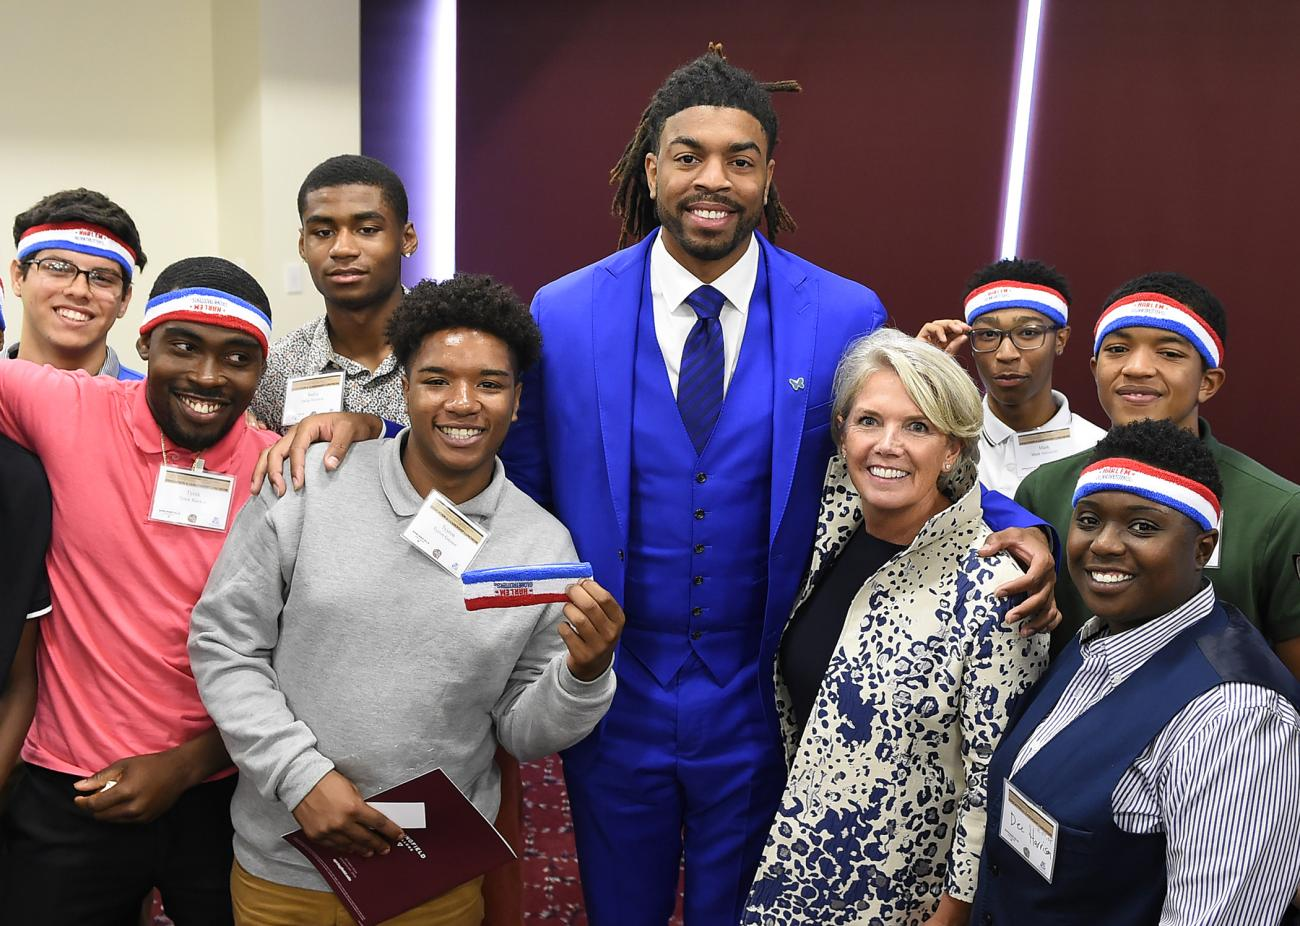 As part of the 2019 Springfield College Education and Leadership Luncheon, members of the Harlem Globetrotters met with local high school students.